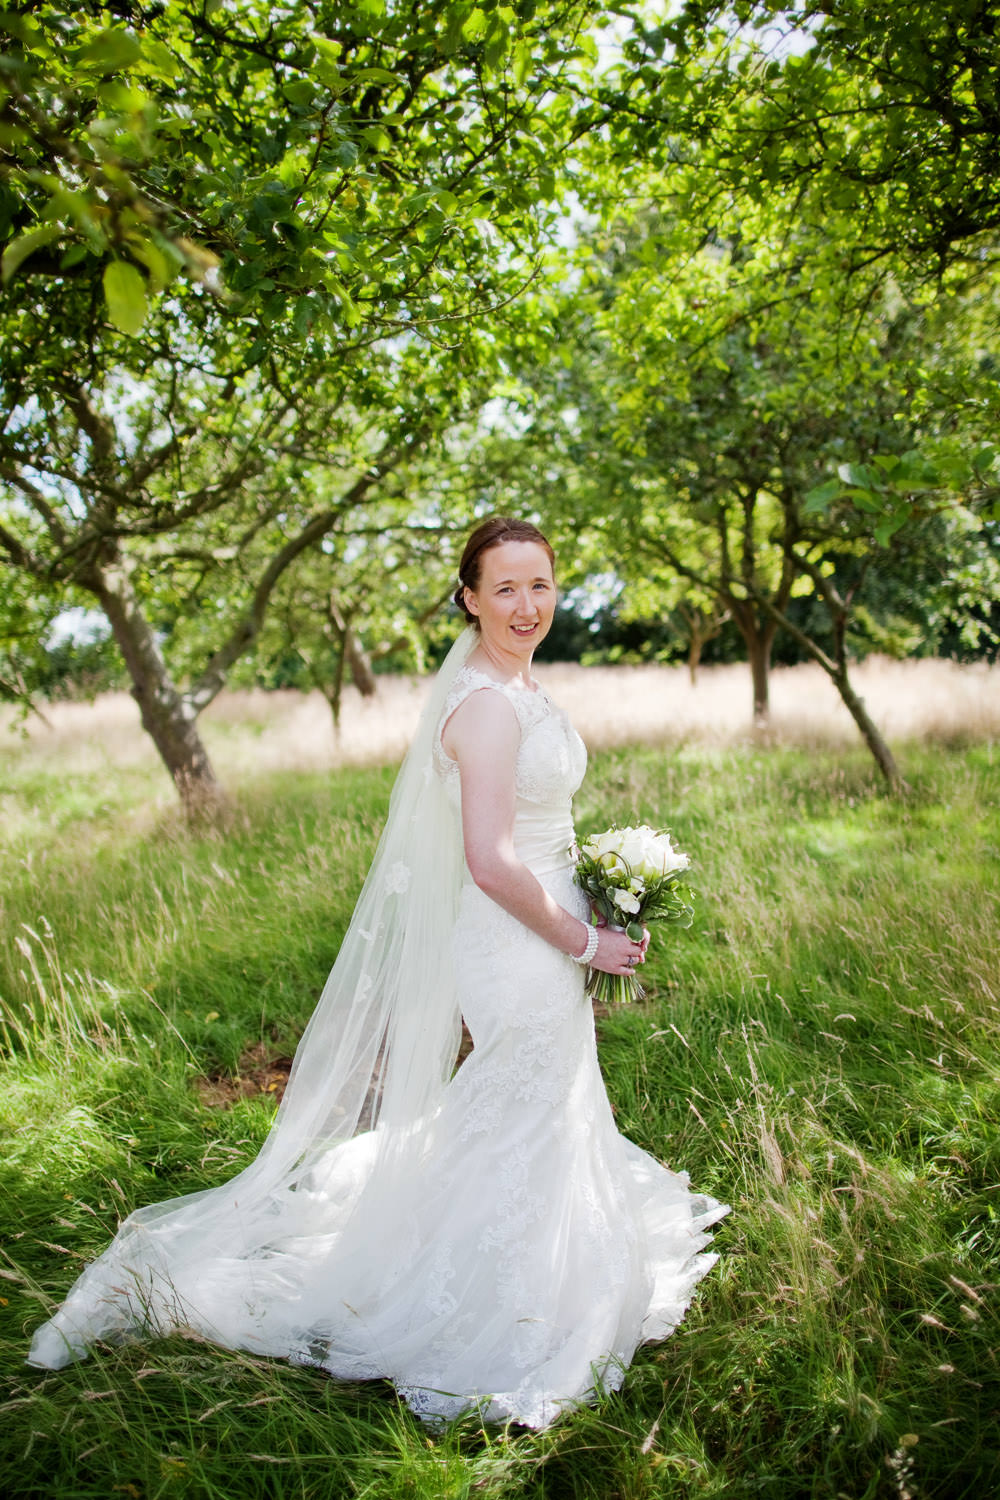 Bridal portait at a Haslington Hall wedding